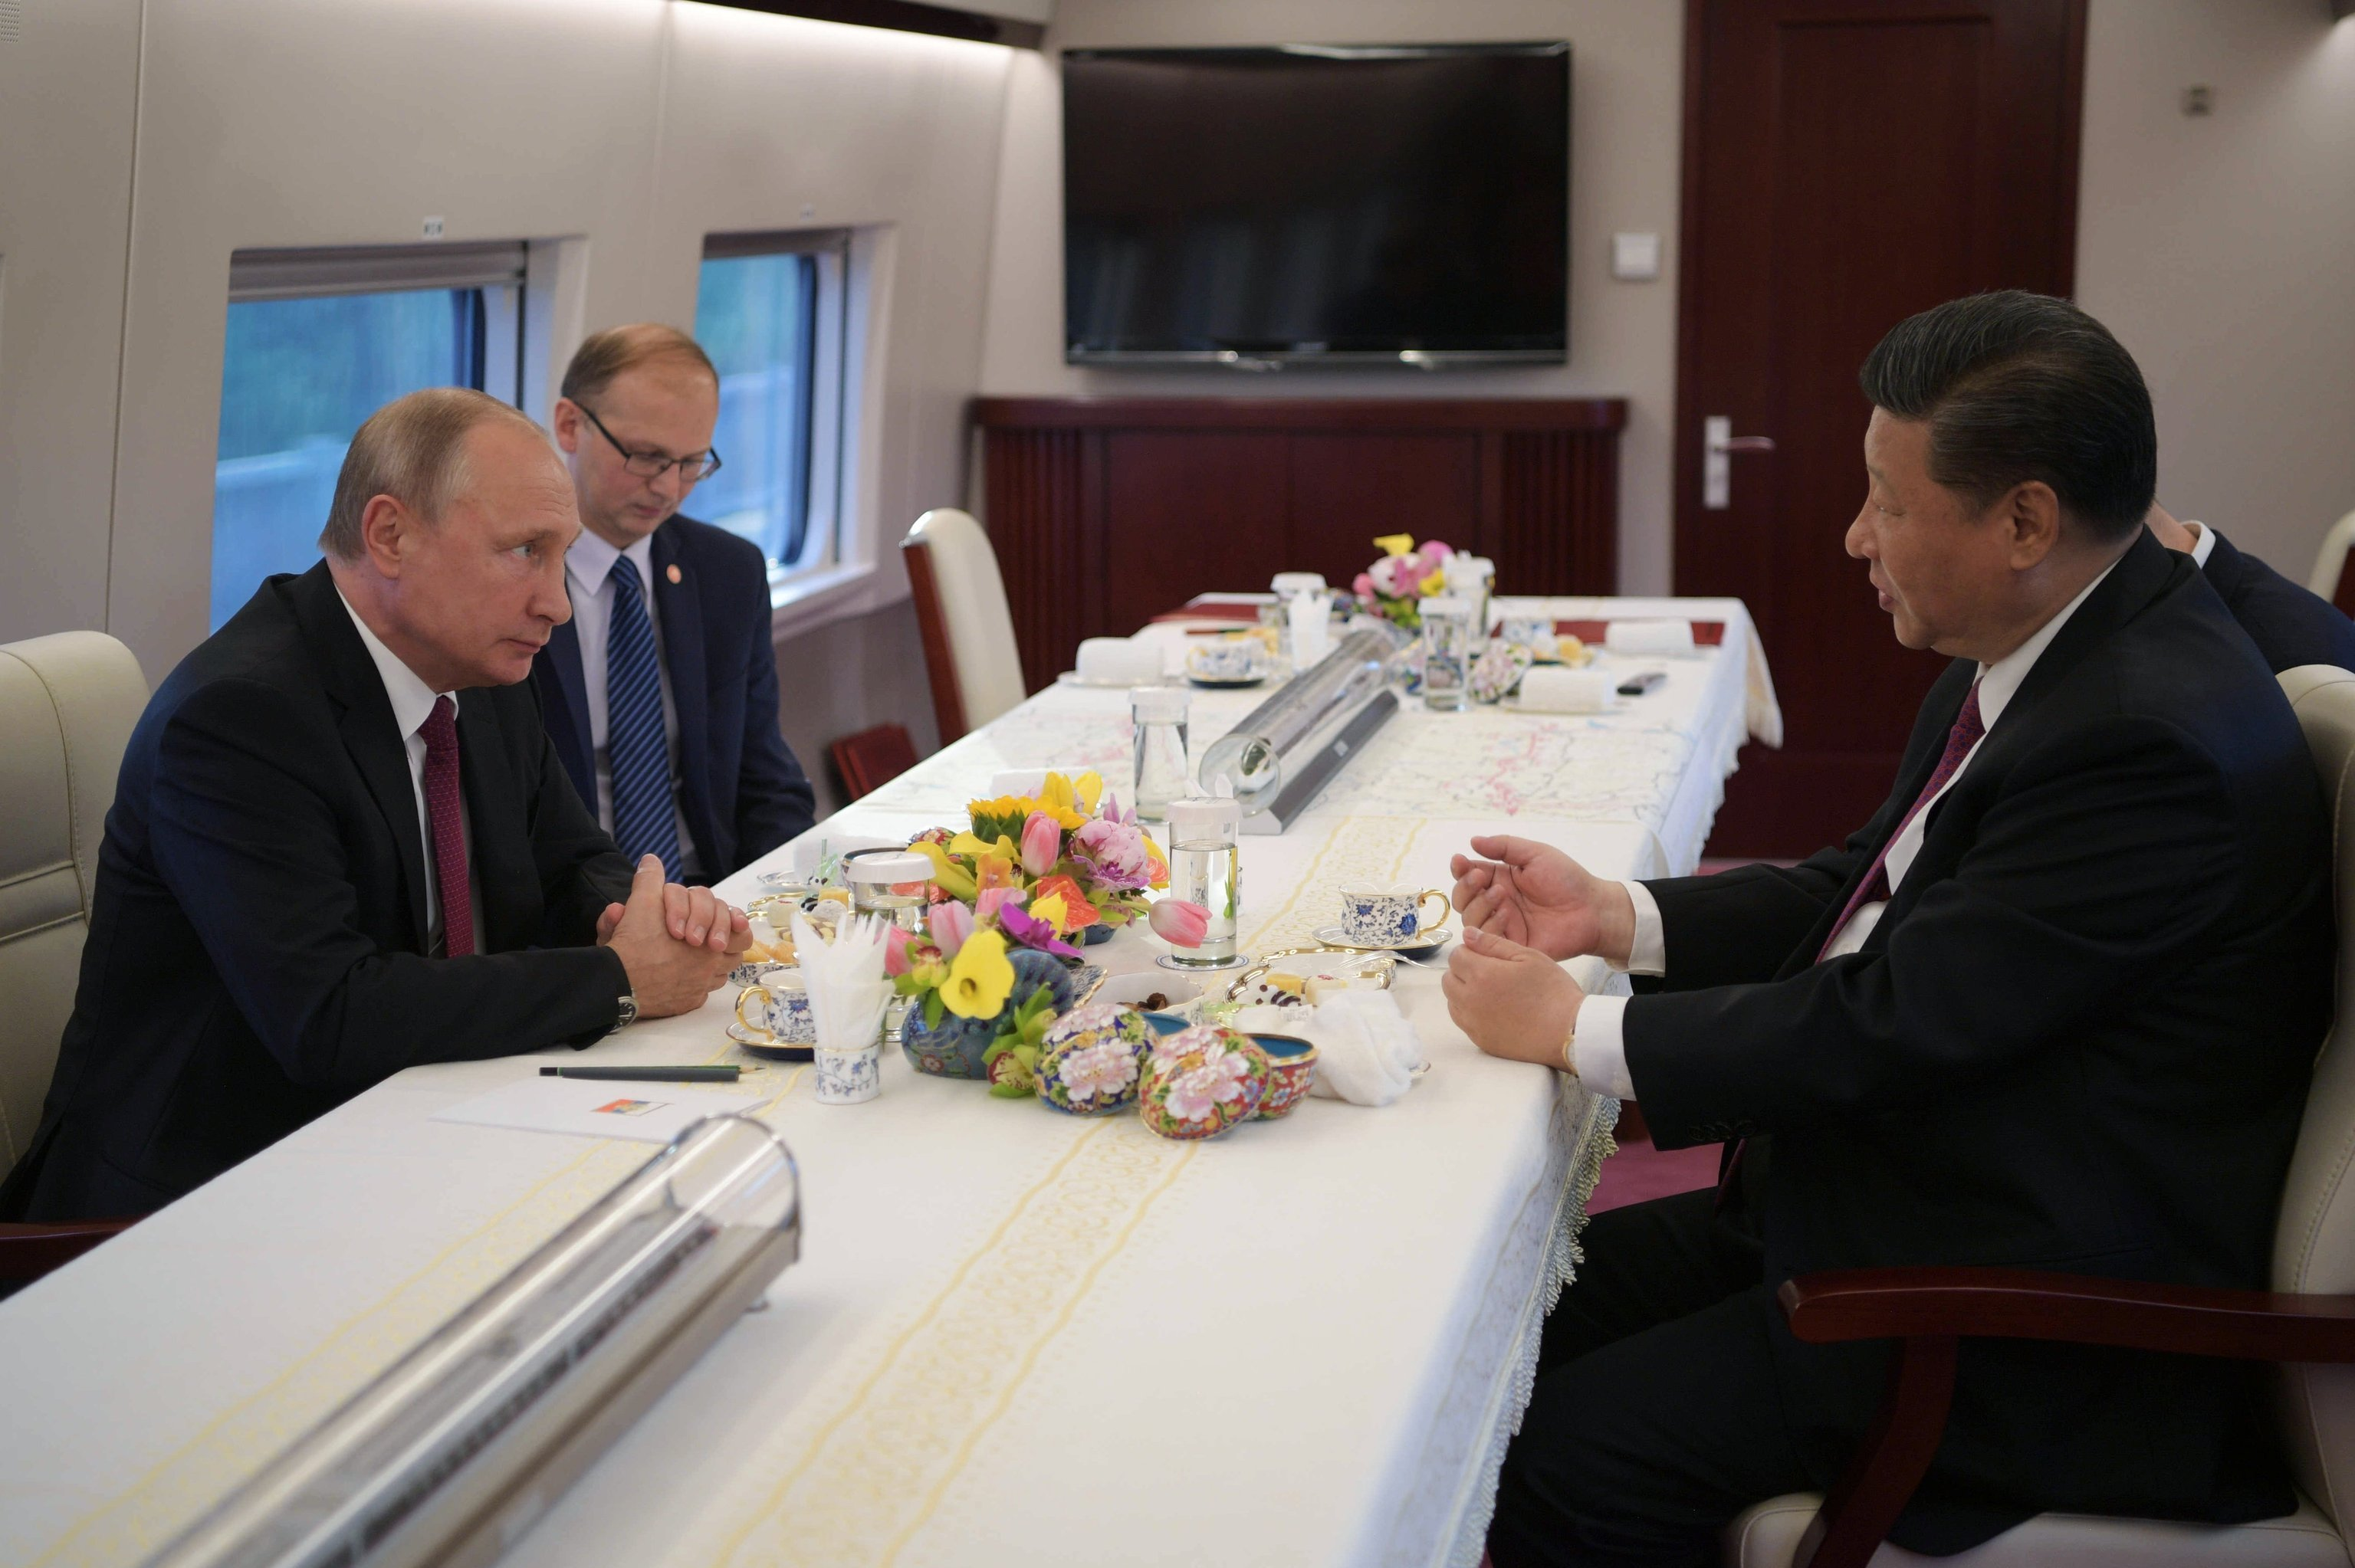 Putin and Xi talk aboard a Chinese highspeed train.